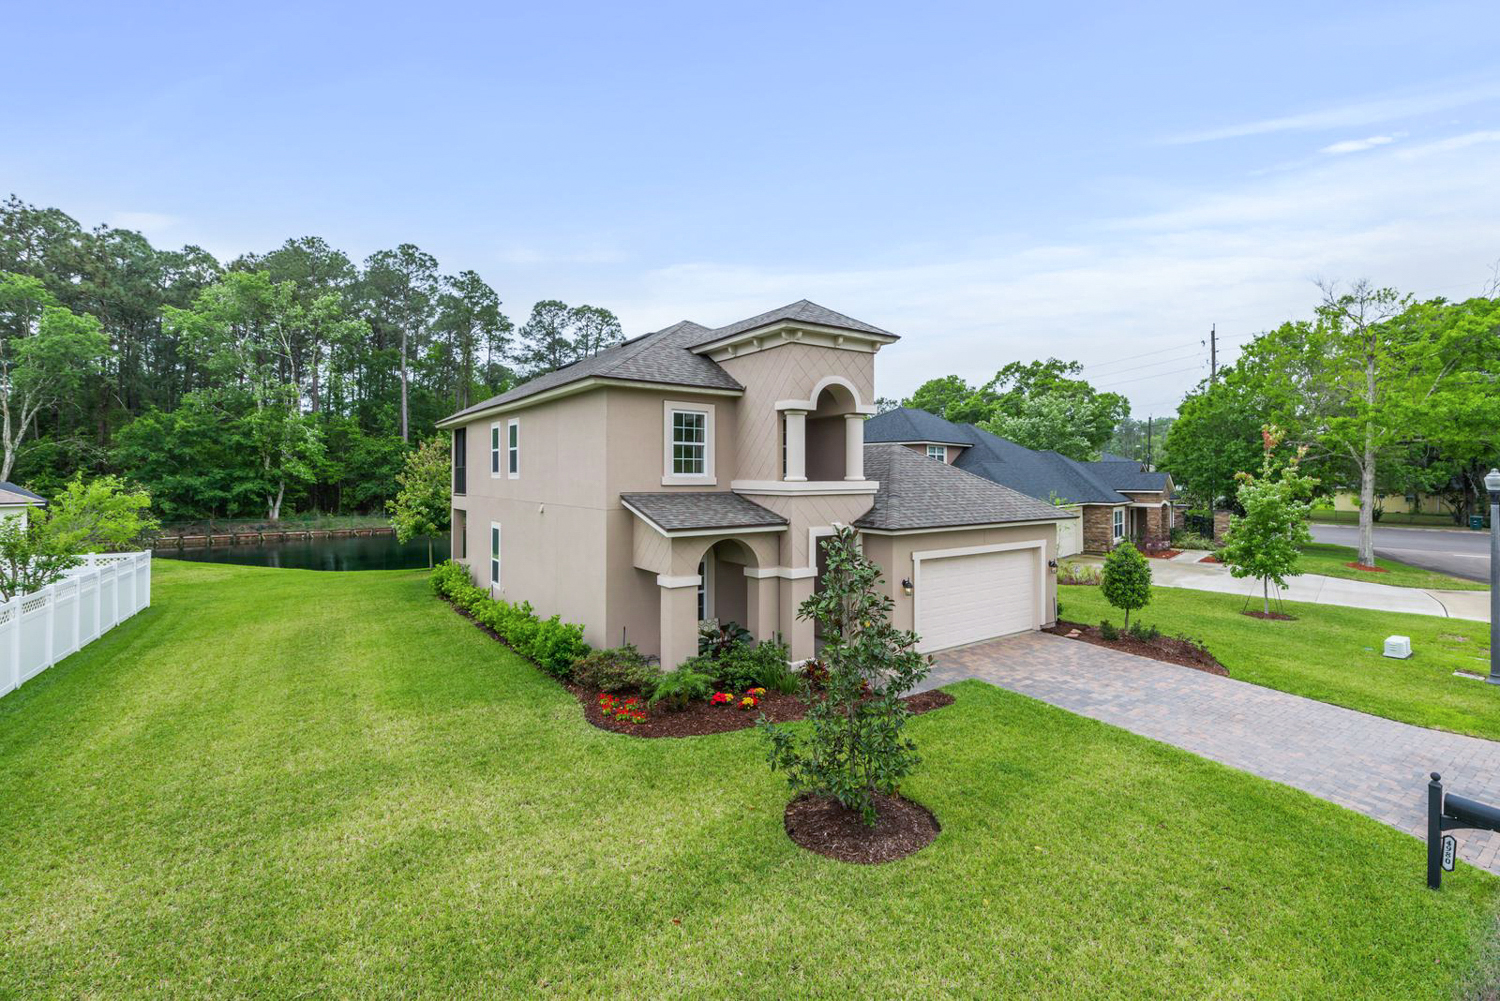 level_exposure_real_estate_photography_jacksonville_florida_32257-1A